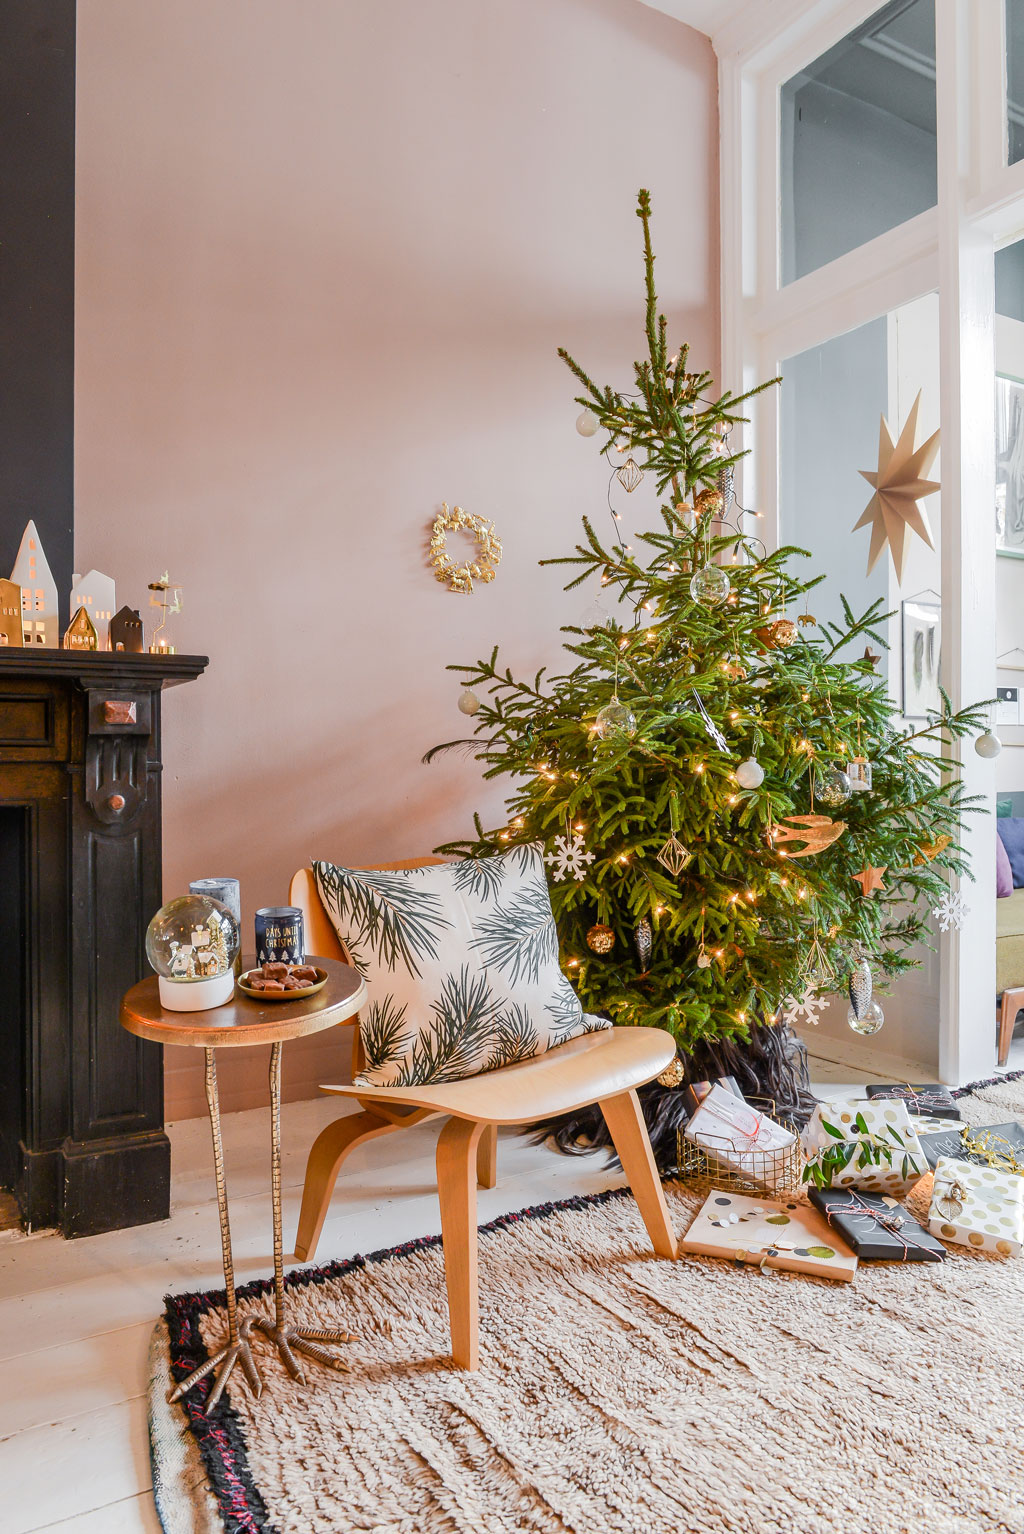 Kerstdecoratie traditioneel | Stek Magazine